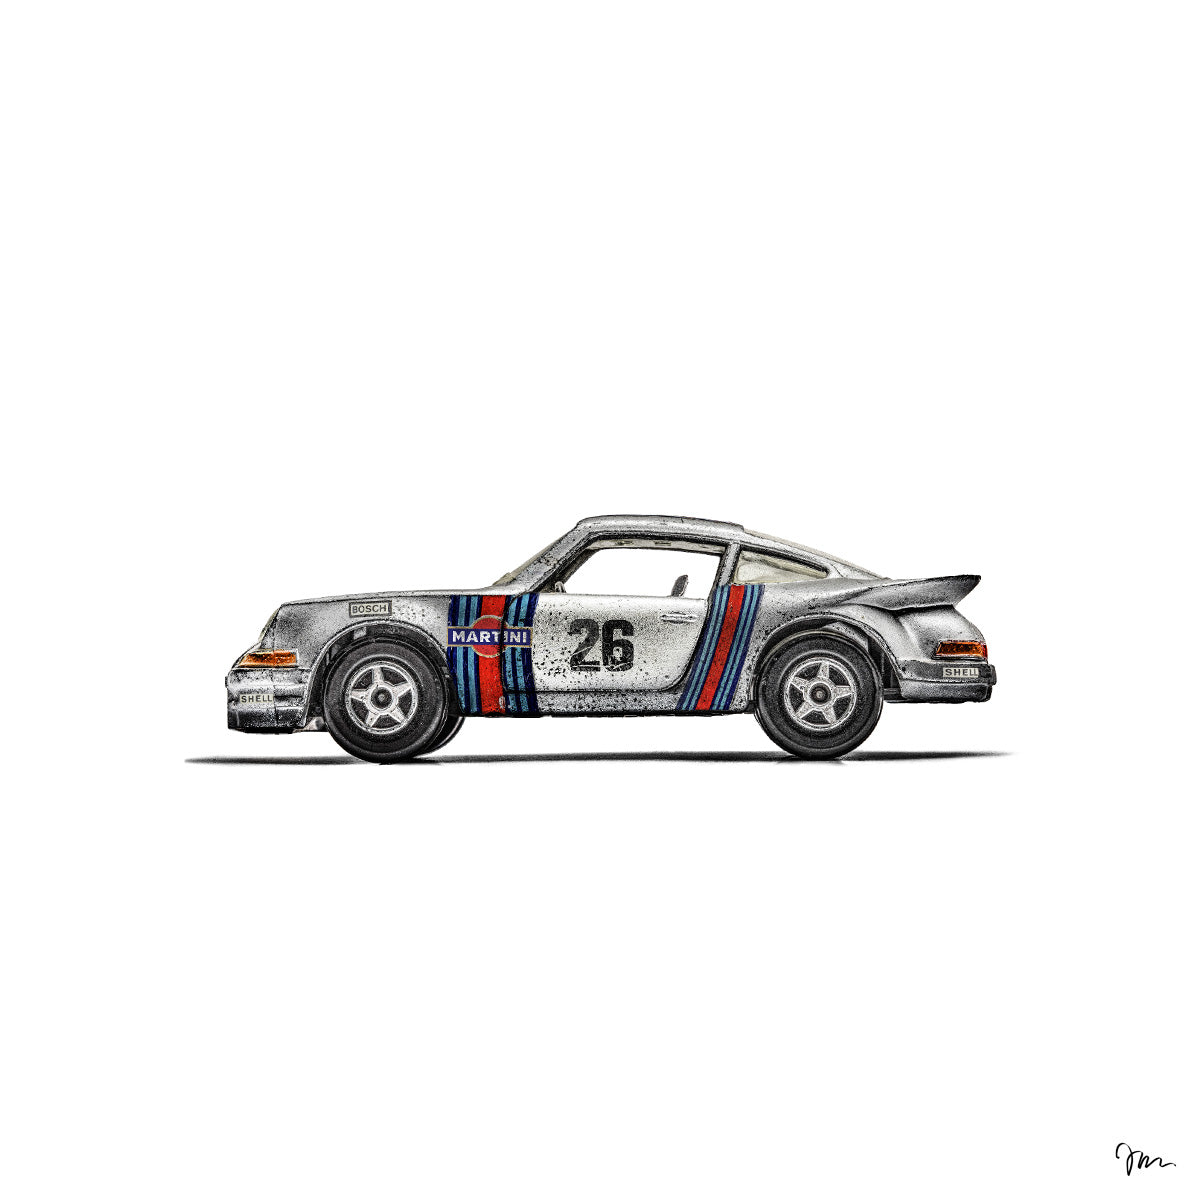 La Porsche Carrera RSR Martini Racing